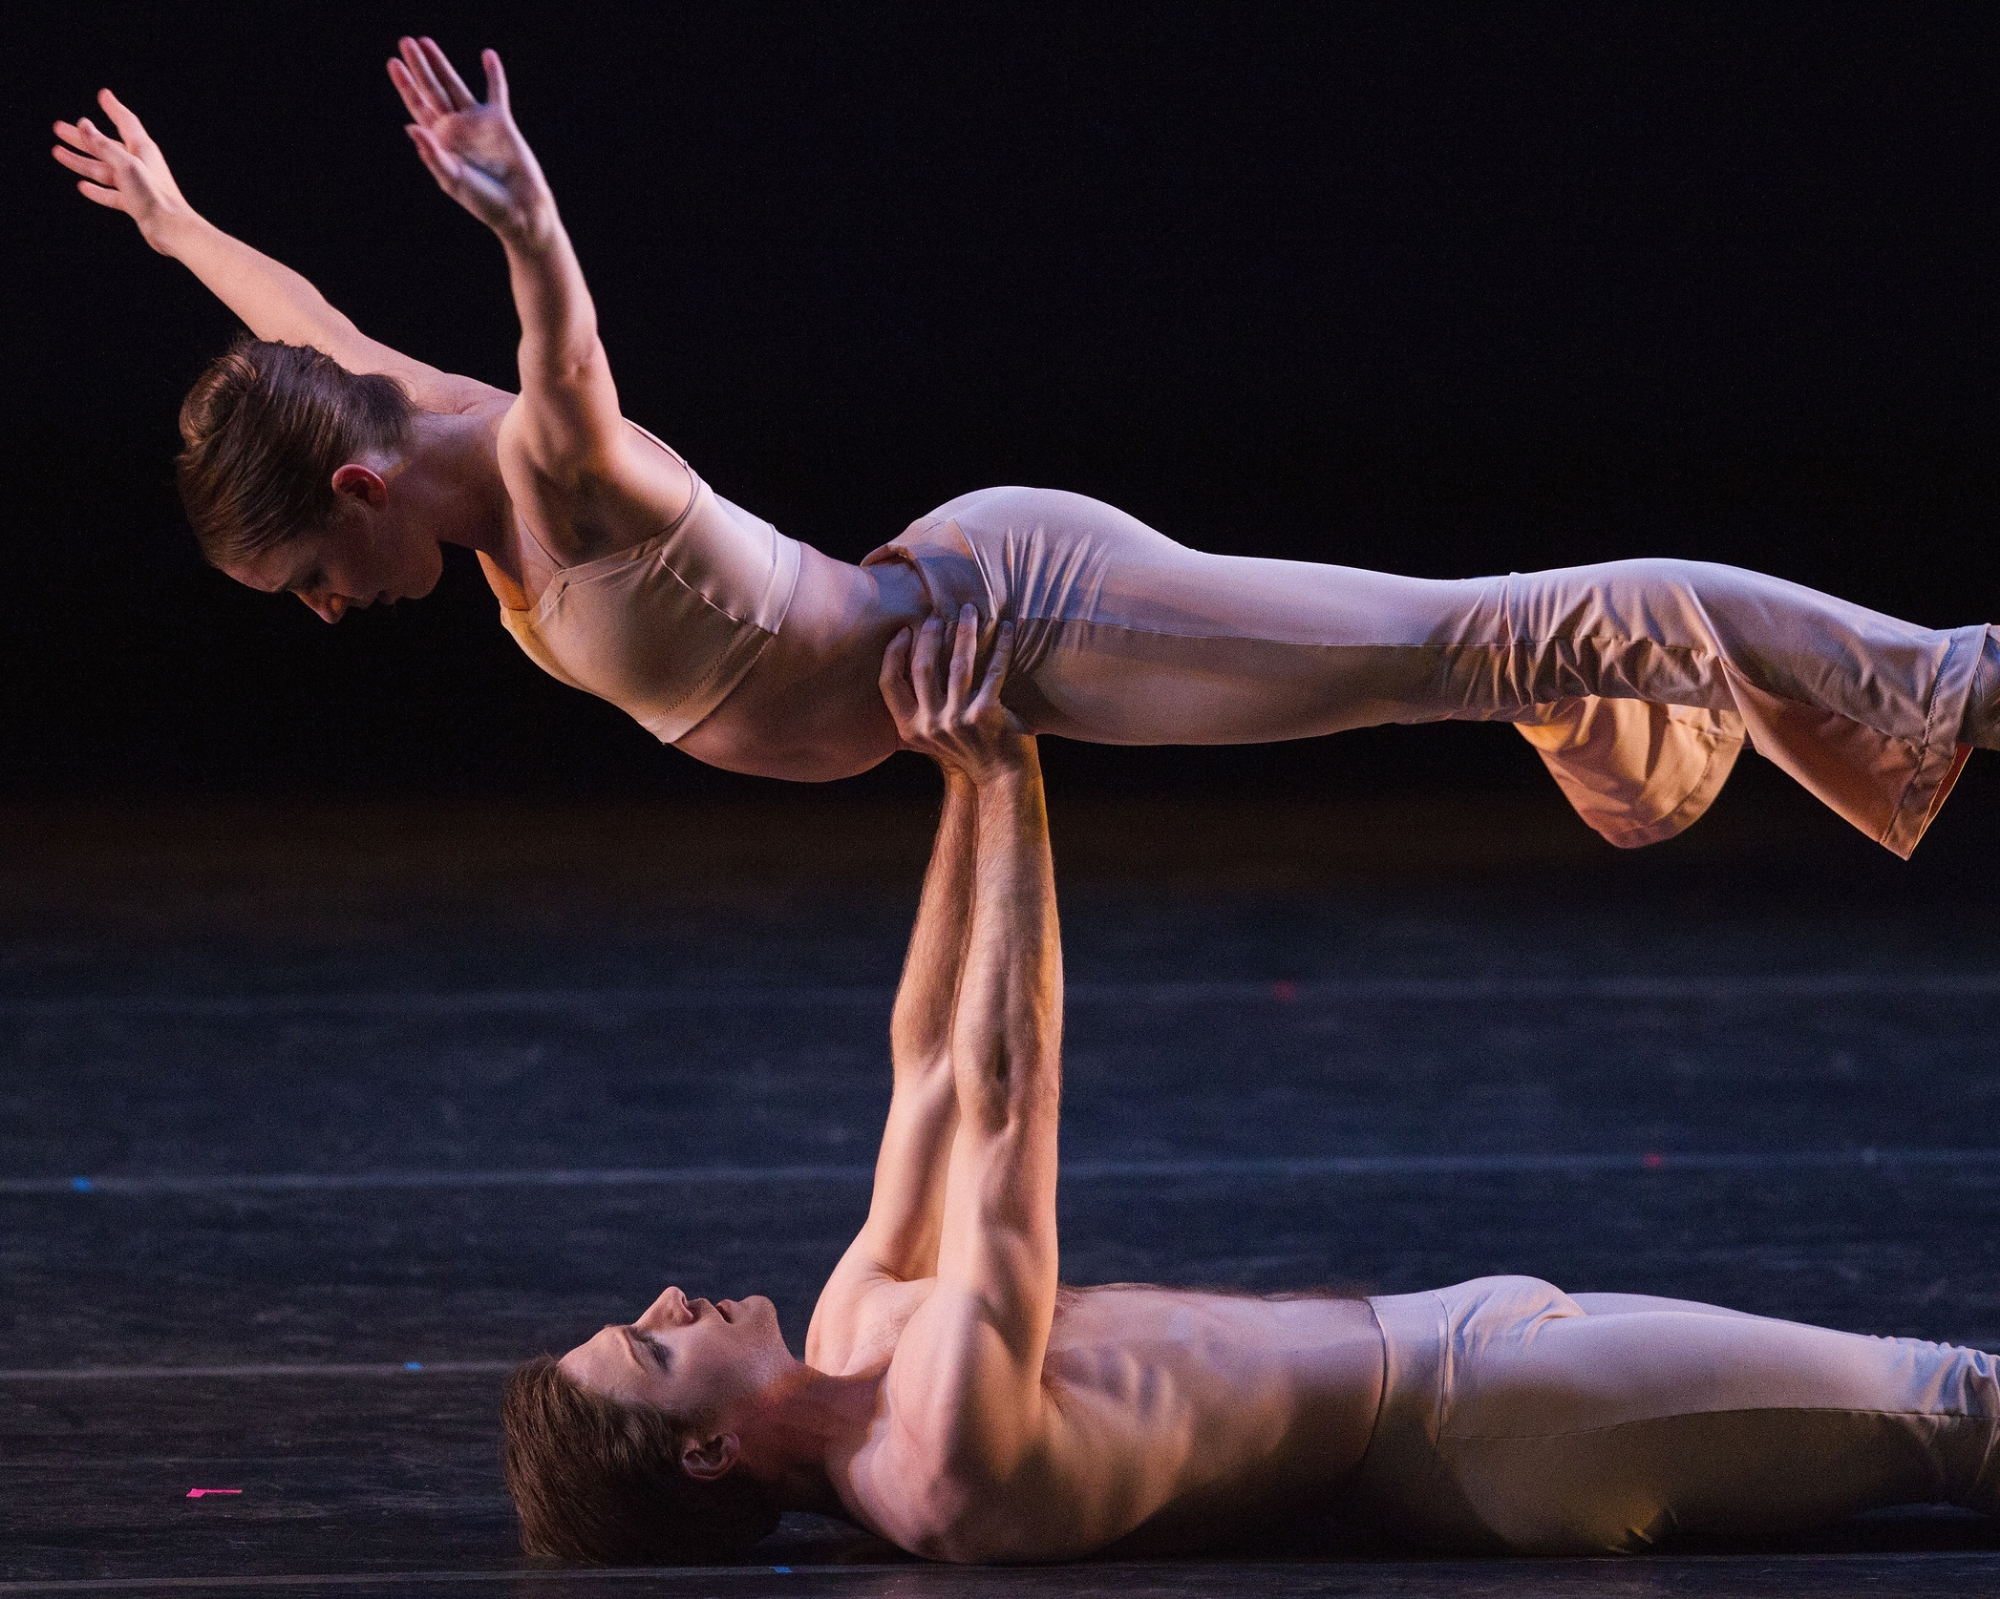 Houston Ballet performance honoring Margaret Alkek Williams at The UNICEF Audrey Hepburn® Society Ball at the Wortham Center on September 6, 2013 in Houston, Texas. (Photo by Bob Levey/Getty Images for UNICEF)